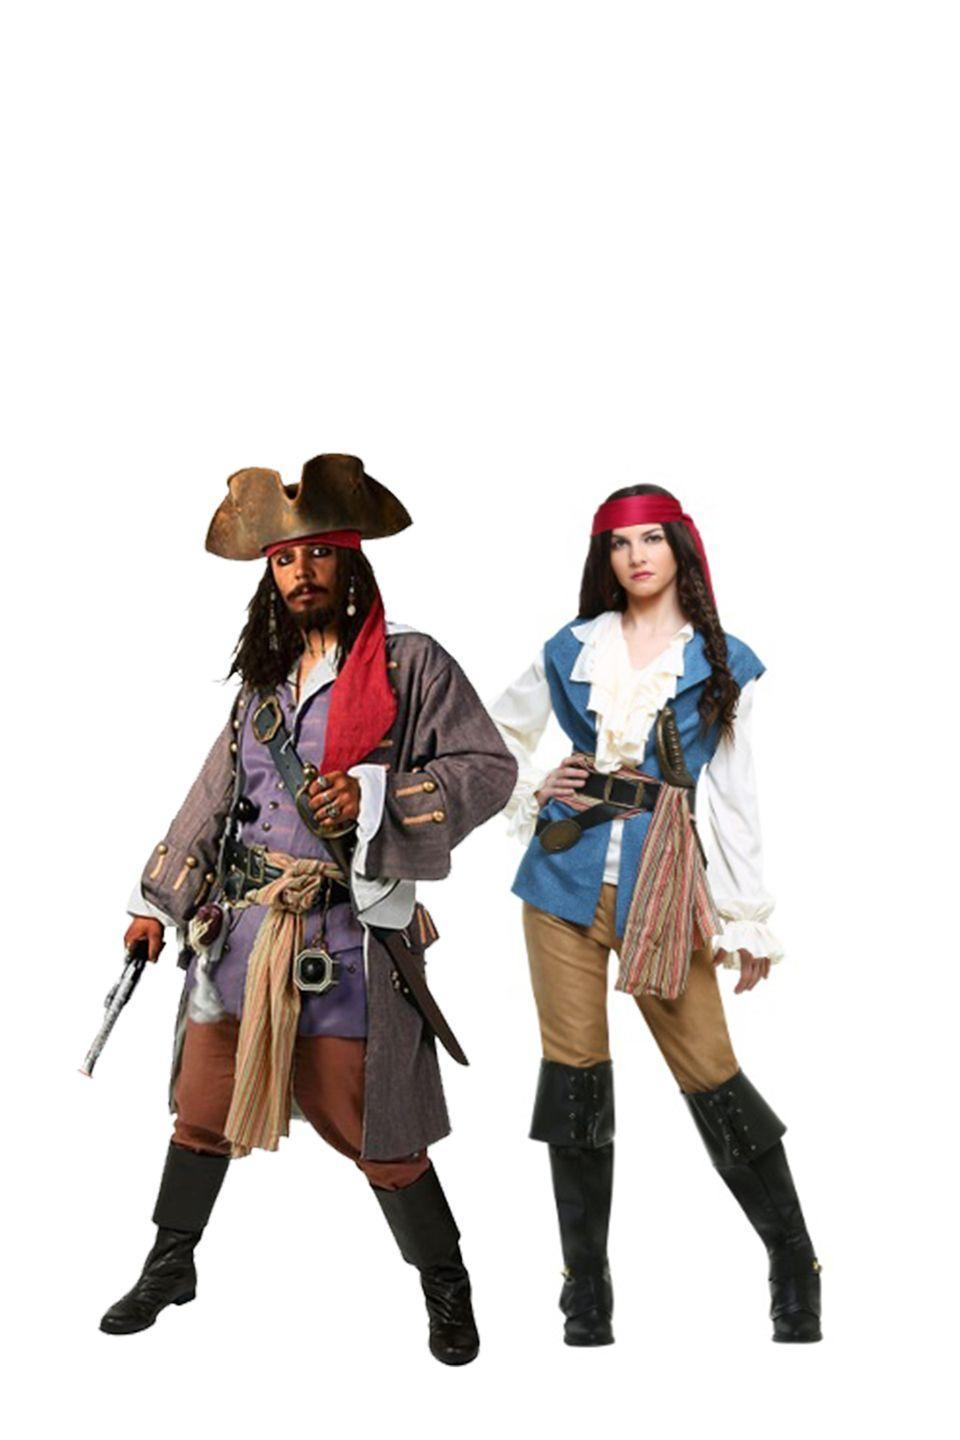 """<p>Yo-ho and a bottle of rum. Channel your adventurous side by dressing down instead of up in this pirate garb. </p><p><a class=""""link rapid-noclick-resp"""" href=""""https://go.redirectingat.com?id=74968X1596630&url=https%3A%2F%2Fwww.halloweencostumes.com%2Fcaptain-jack-sparrow-deluxe-adult.html&sref=https%3A%2F%2Fwww.womansday.com%2Fstyle%2Fg28691602%2Fdisney-couples-costumes%2F"""" rel=""""nofollow noopener"""" target=""""_blank"""" data-ylk=""""slk:SHOP JACK SPARROW COSTUME"""">SHOP JACK SPARROW COSTUME</a></p><p><a class=""""link rapid-noclick-resp"""" href=""""https://go.redirectingat.com?id=74968X1596630&url=https%3A%2F%2Fwww.halloweencostumes.com%2Fwomens-seven-seas-sweetie.html&sref=https%3A%2F%2Fwww.womansday.com%2Fstyle%2Fg28691602%2Fdisney-couples-costumes%2F"""" rel=""""nofollow noopener"""" target=""""_blank"""" data-ylk=""""slk:SHOP SEVEN SEAS LADY COSTUME"""">SHOP SEVEN SEAS LADY COSTUME</a> </p>"""